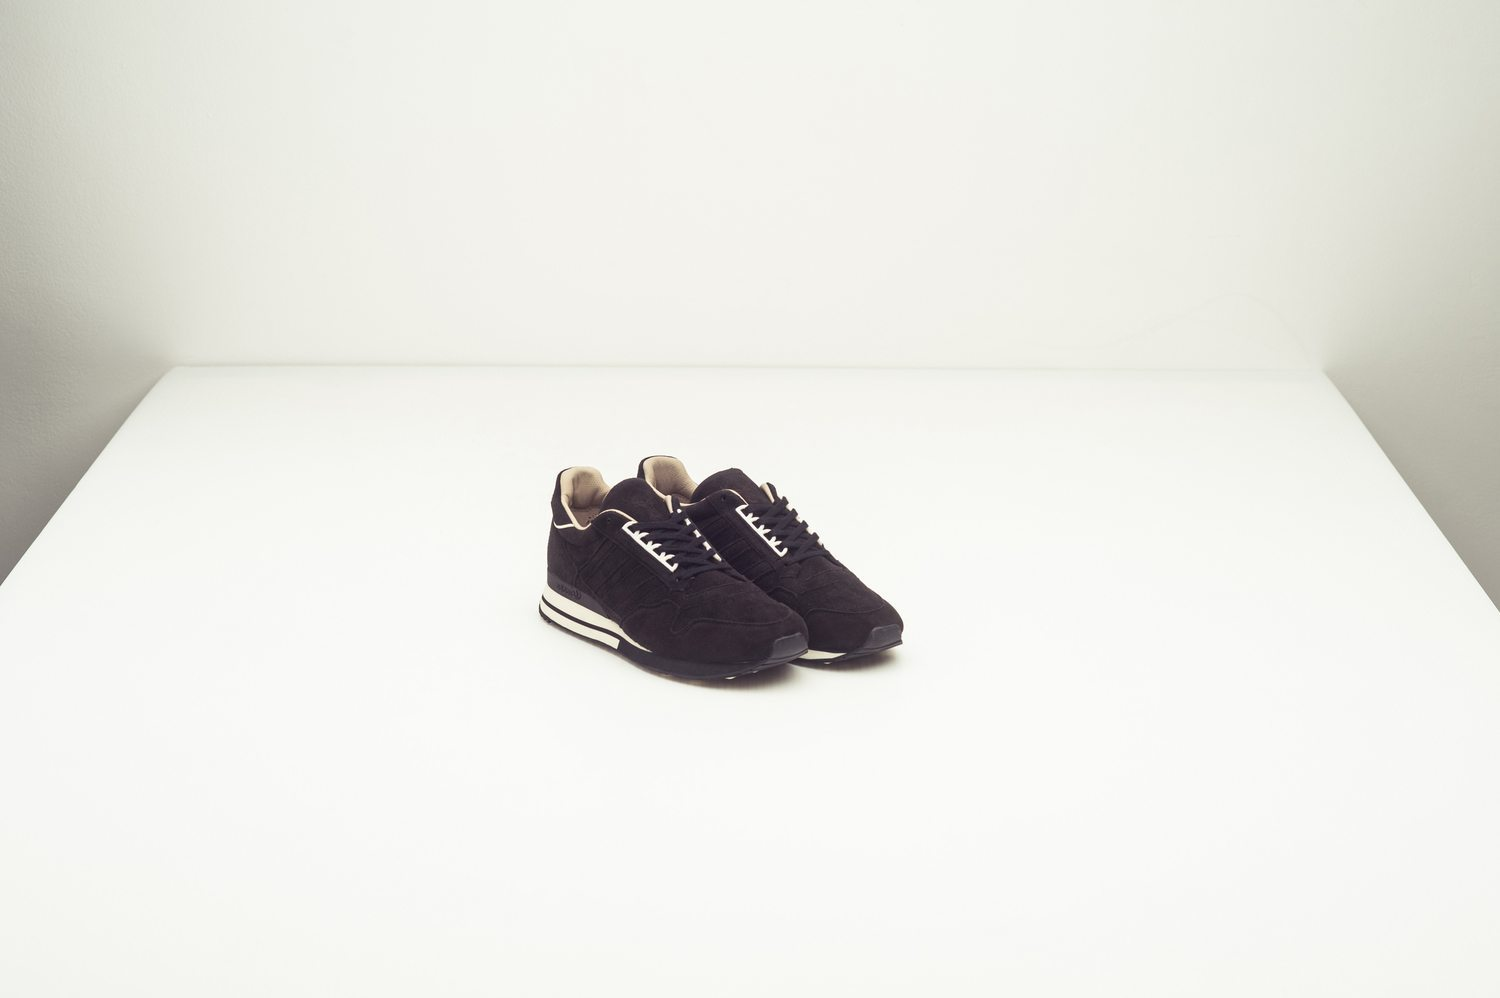 adidas originals made in germany pack 1